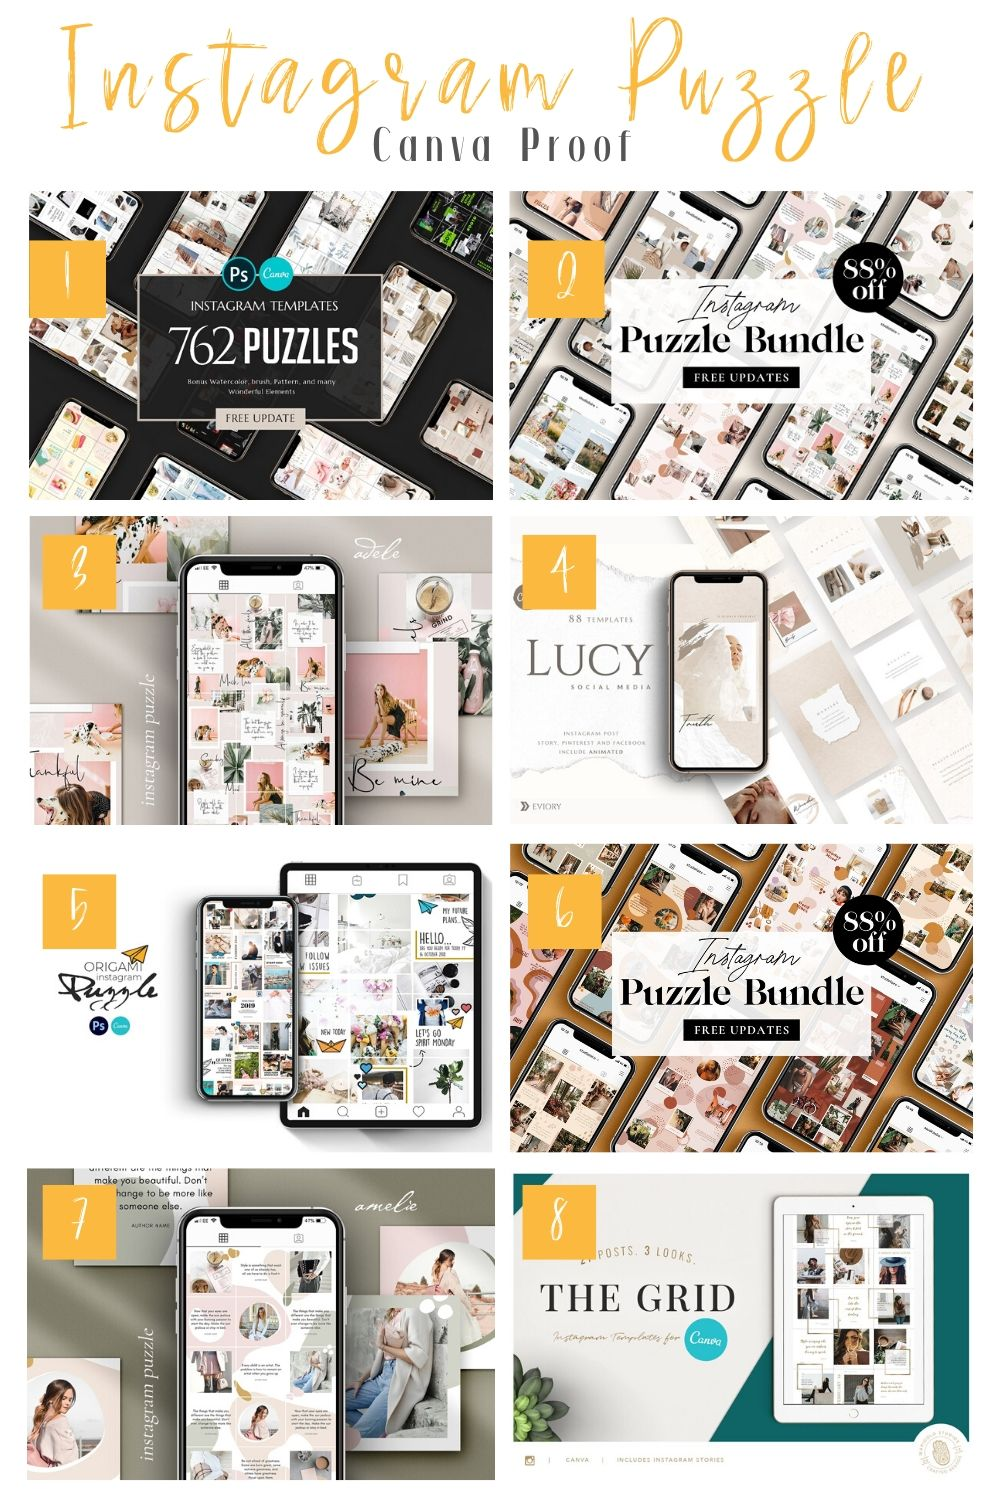 Instagram Puzzle Feed Canva